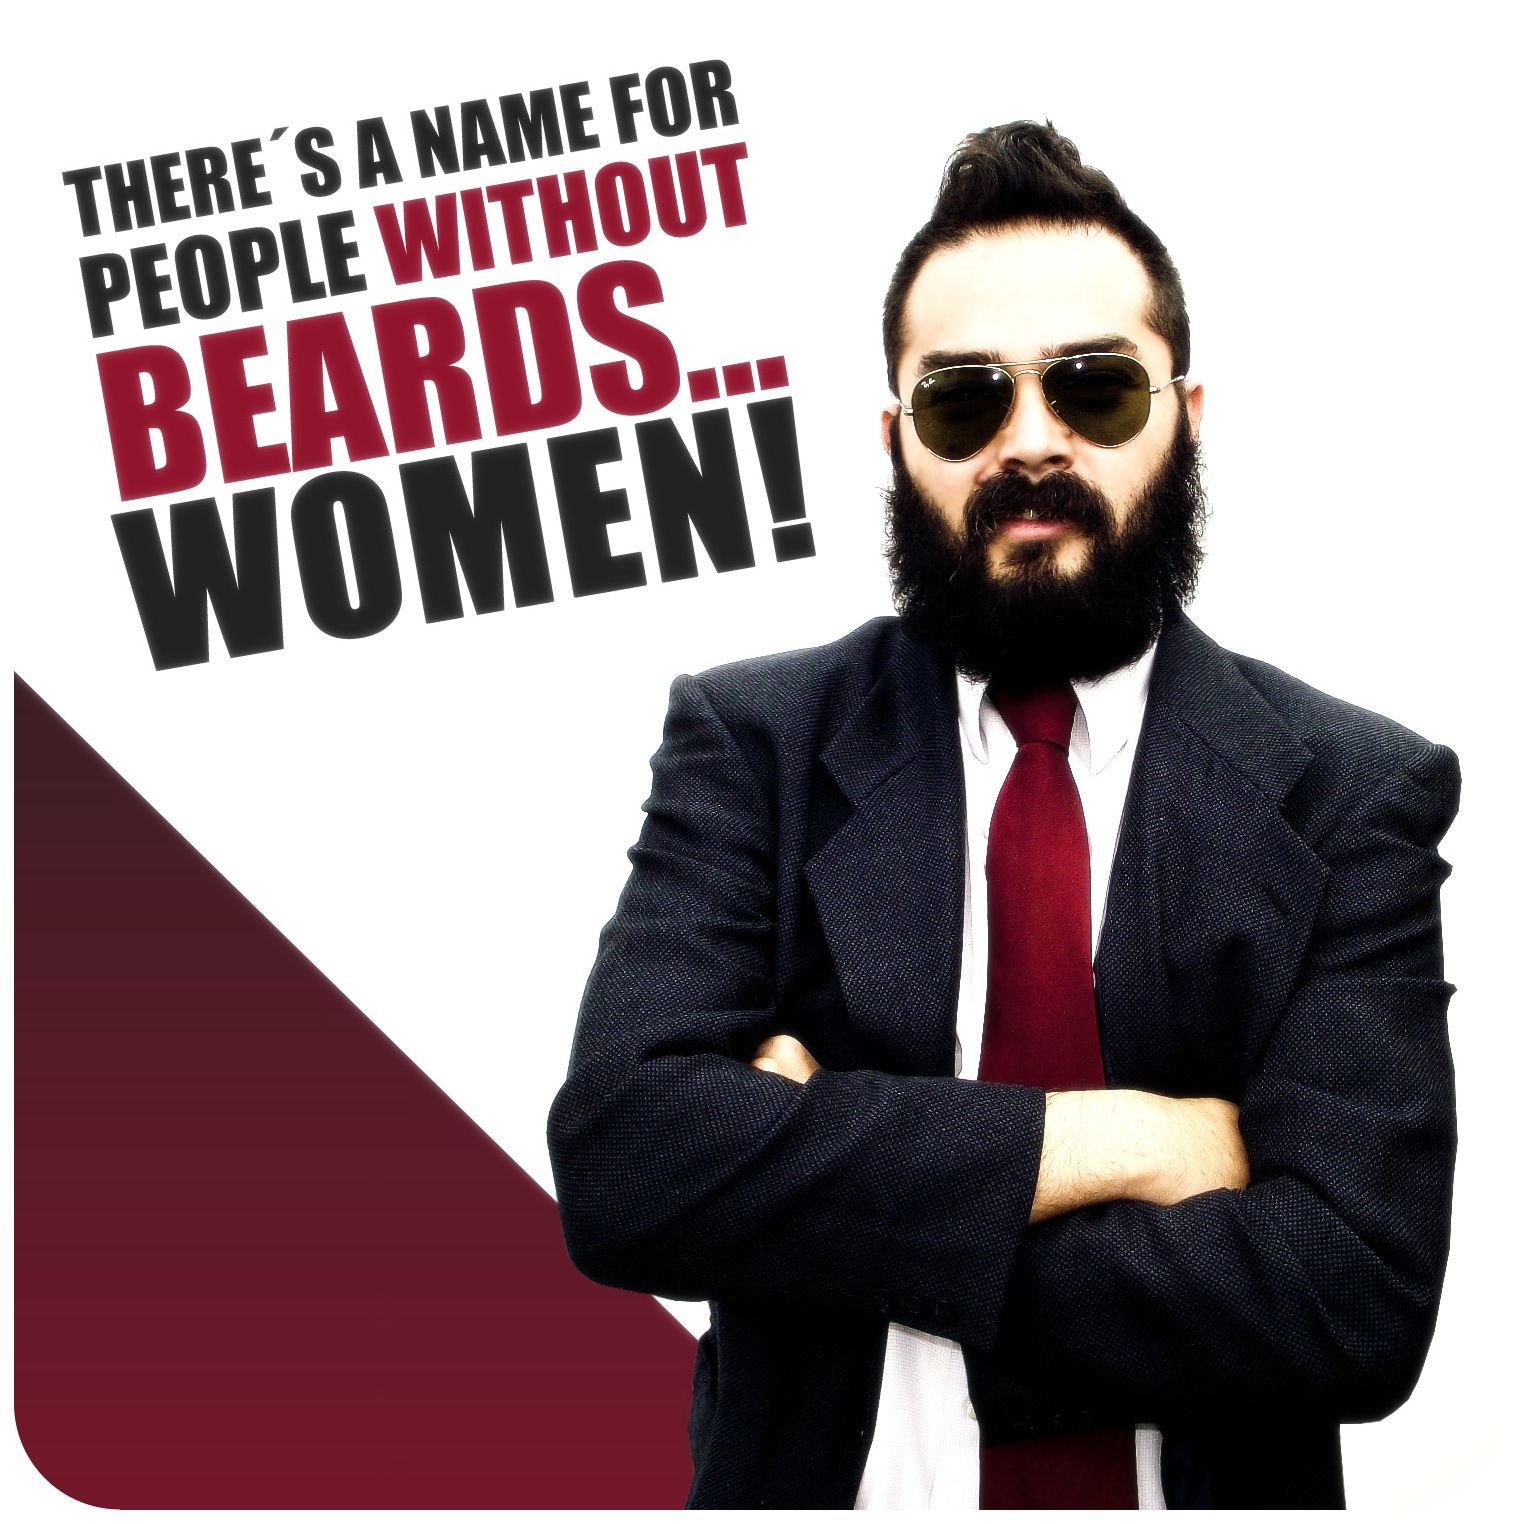 There S A Name For People Without Beard Women Chic Beard